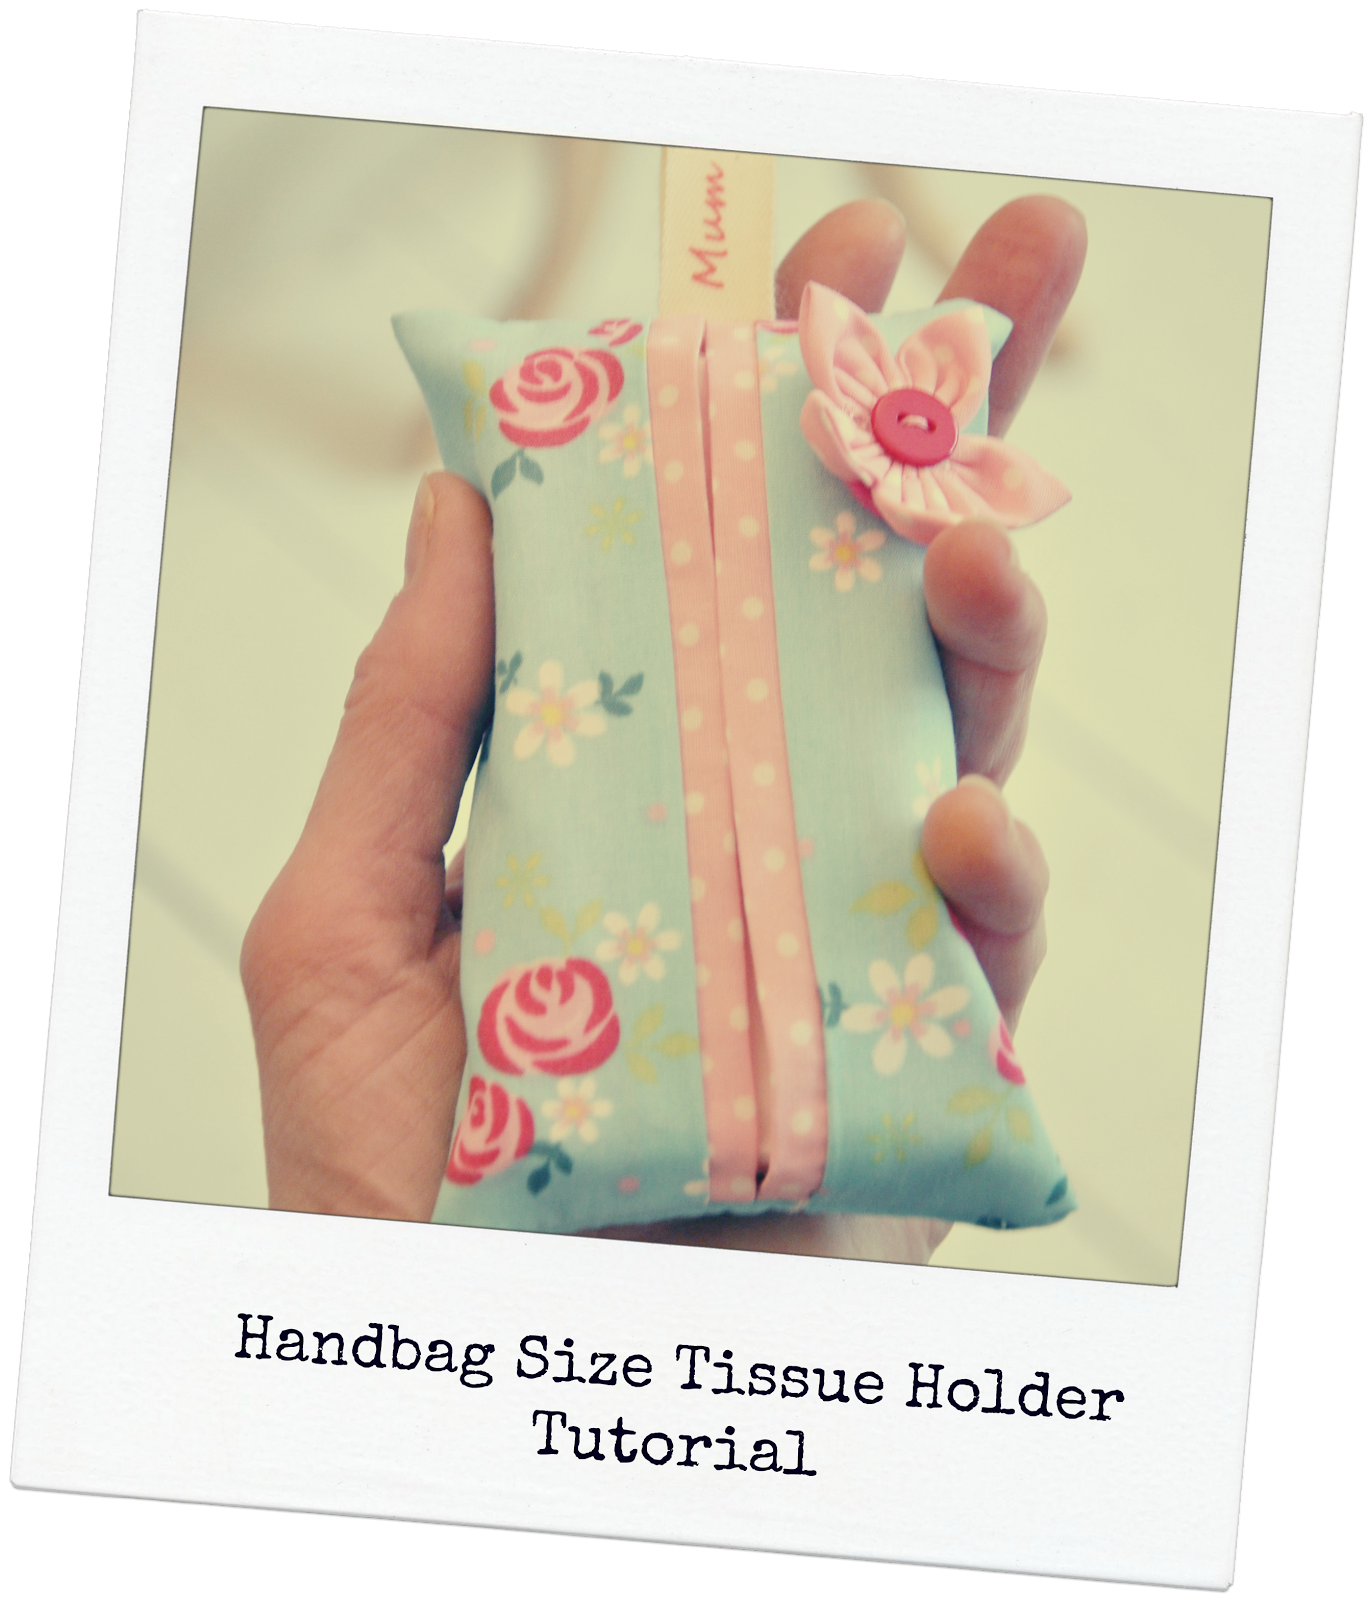 Handbag Size Tissue Holder